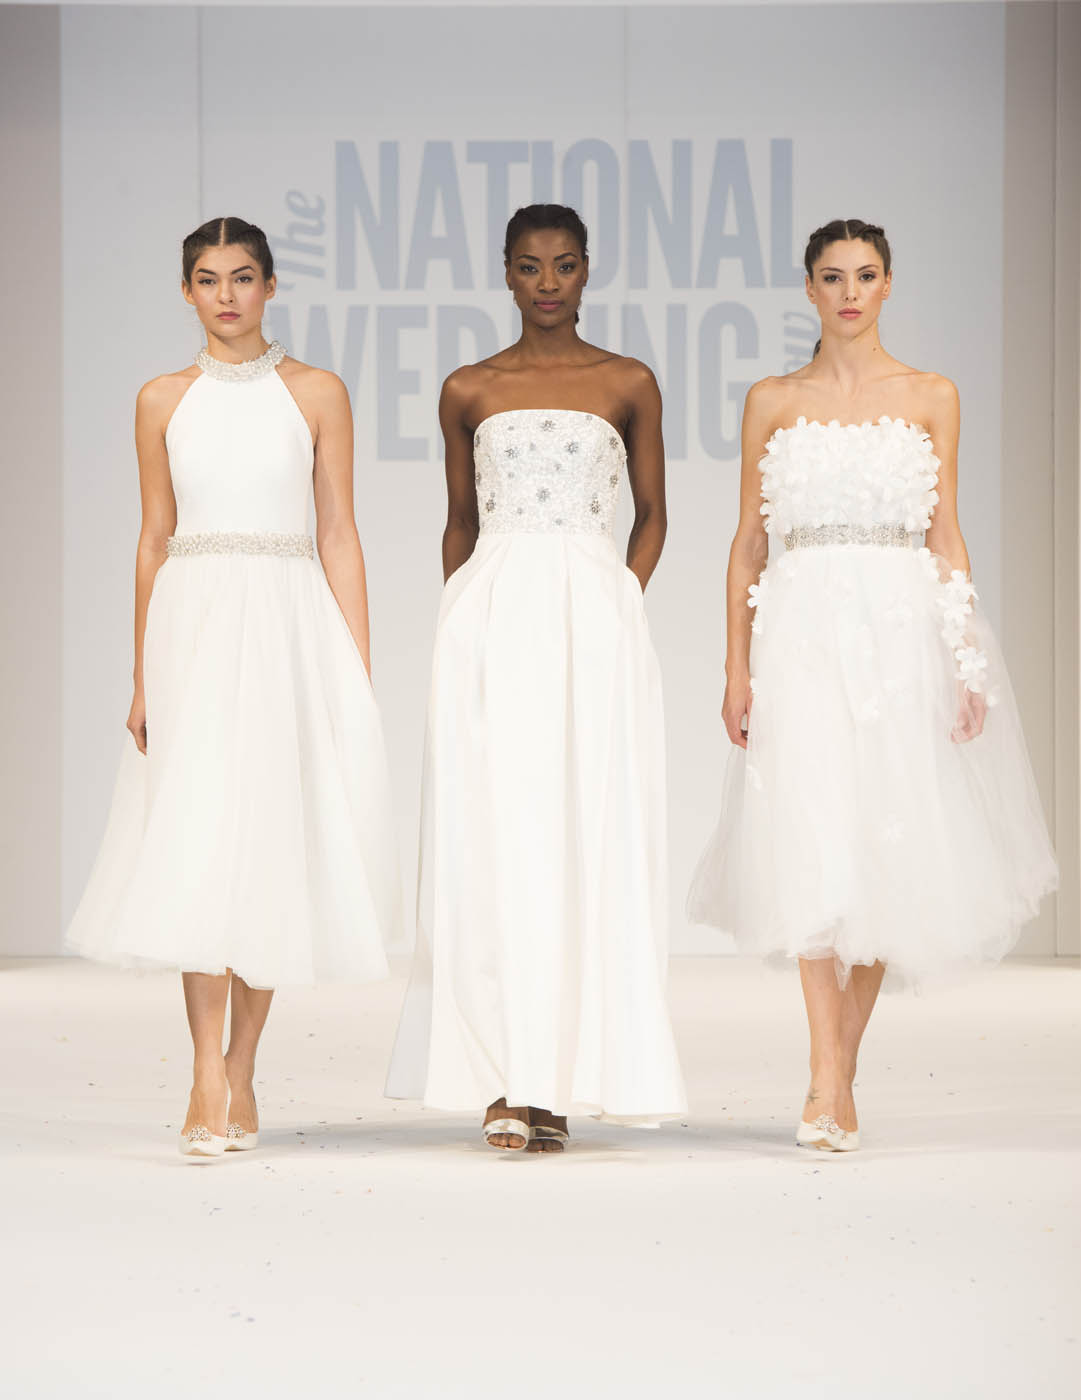 Boho Loves: The National Wedding Show